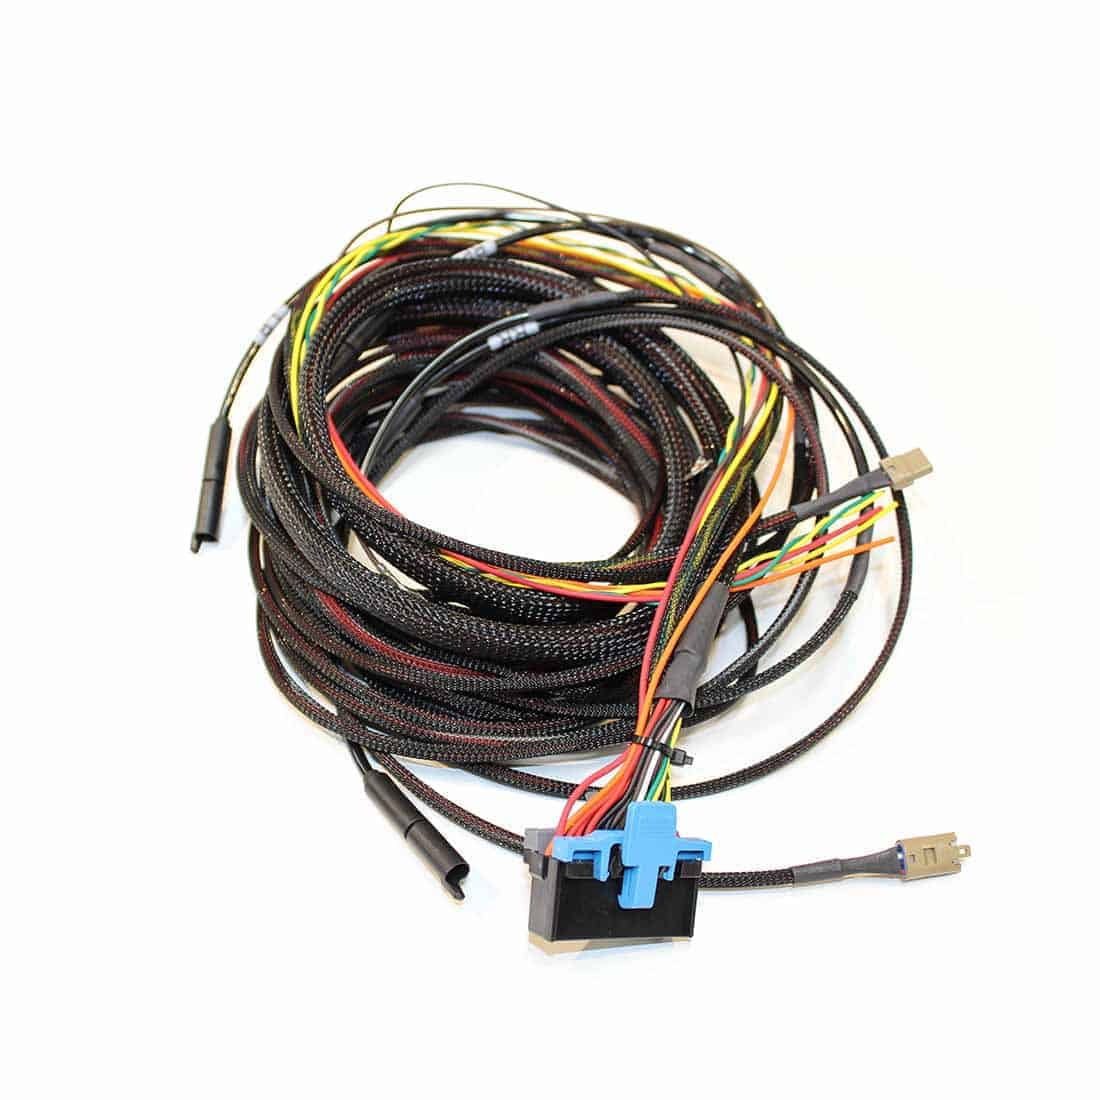 Dsc Sport Stand Alone Wiring Harness Product Wire Related Products